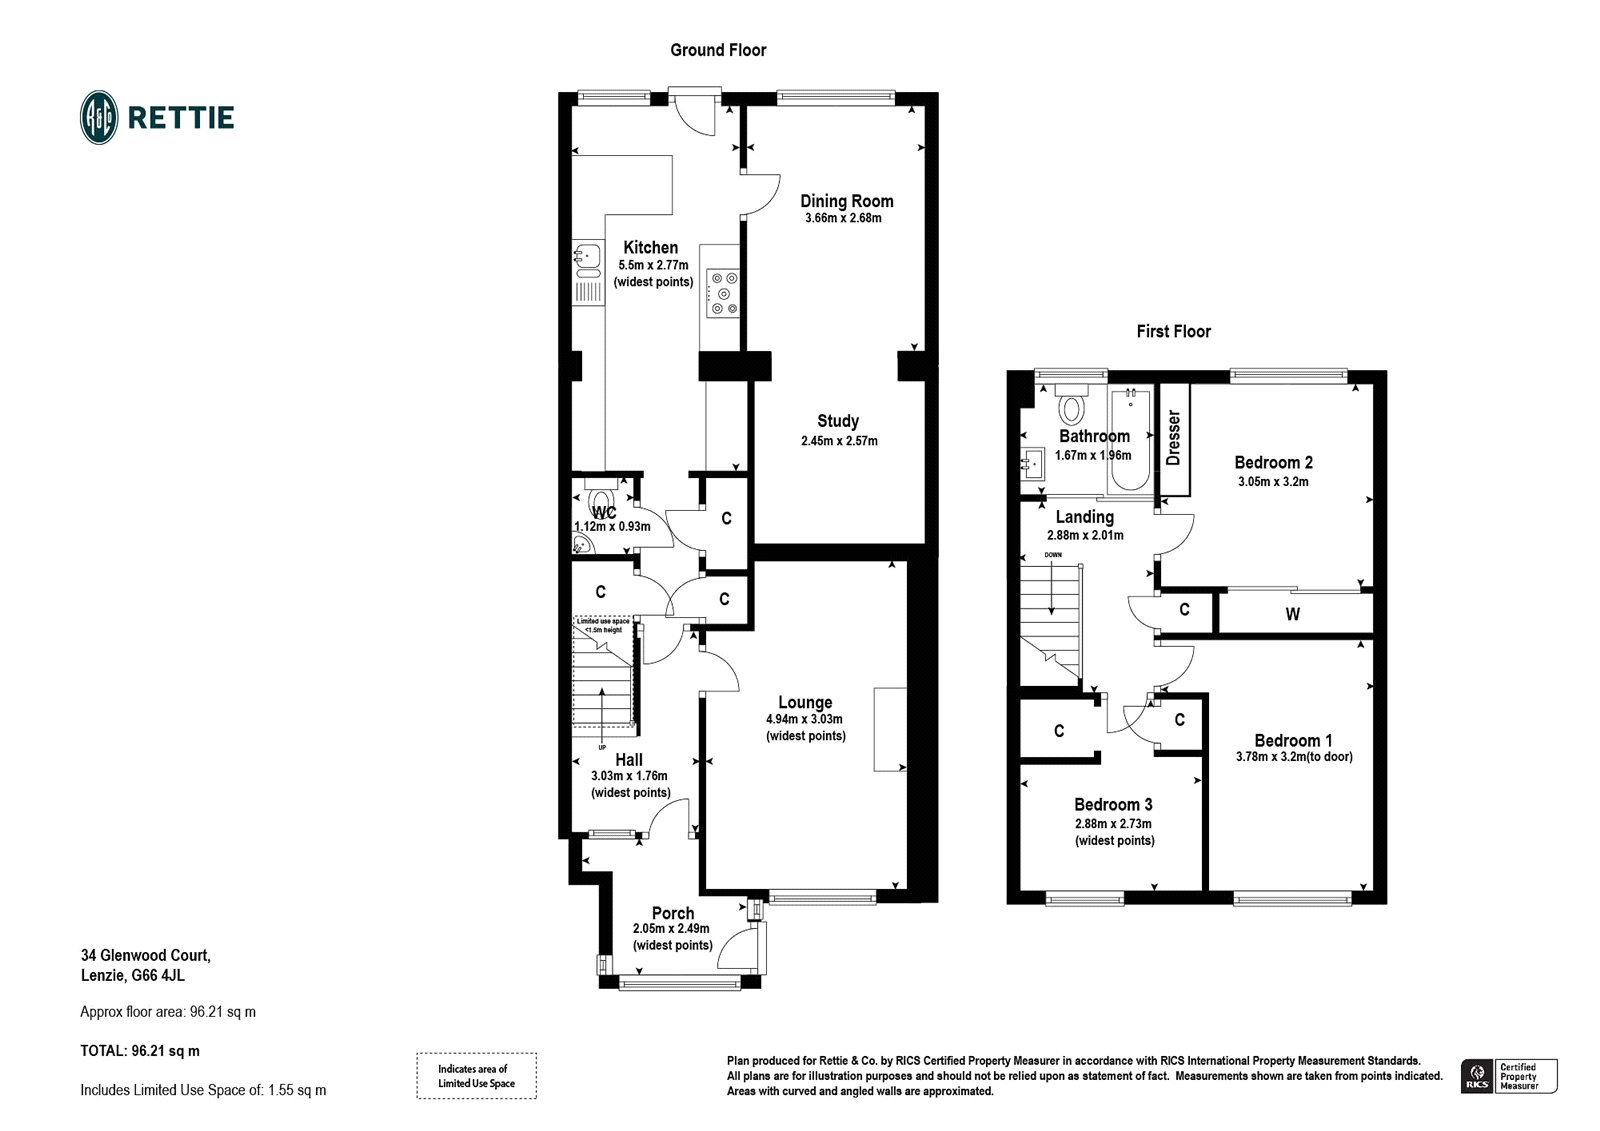 Floorplans for Glenwood Court, Lenzie, G66